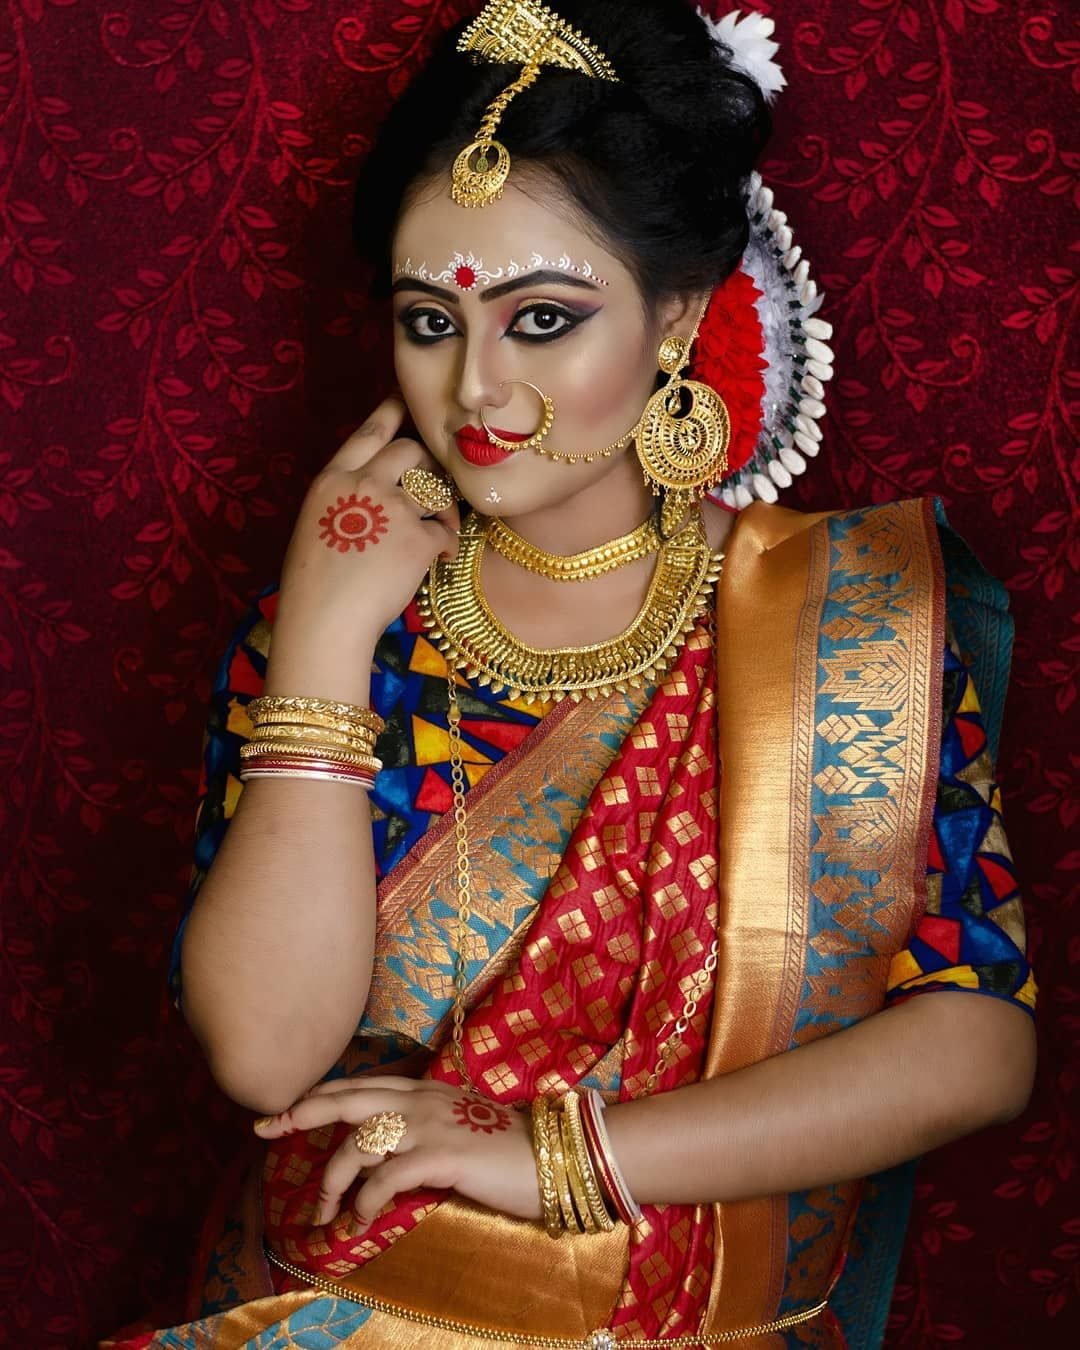 Hindu Bridal Hairstyles 14 Safe Hairdos For The Modern: WEDDING DIARIES BRIDE PHOTOGRAPHY BY ME . Capture Your